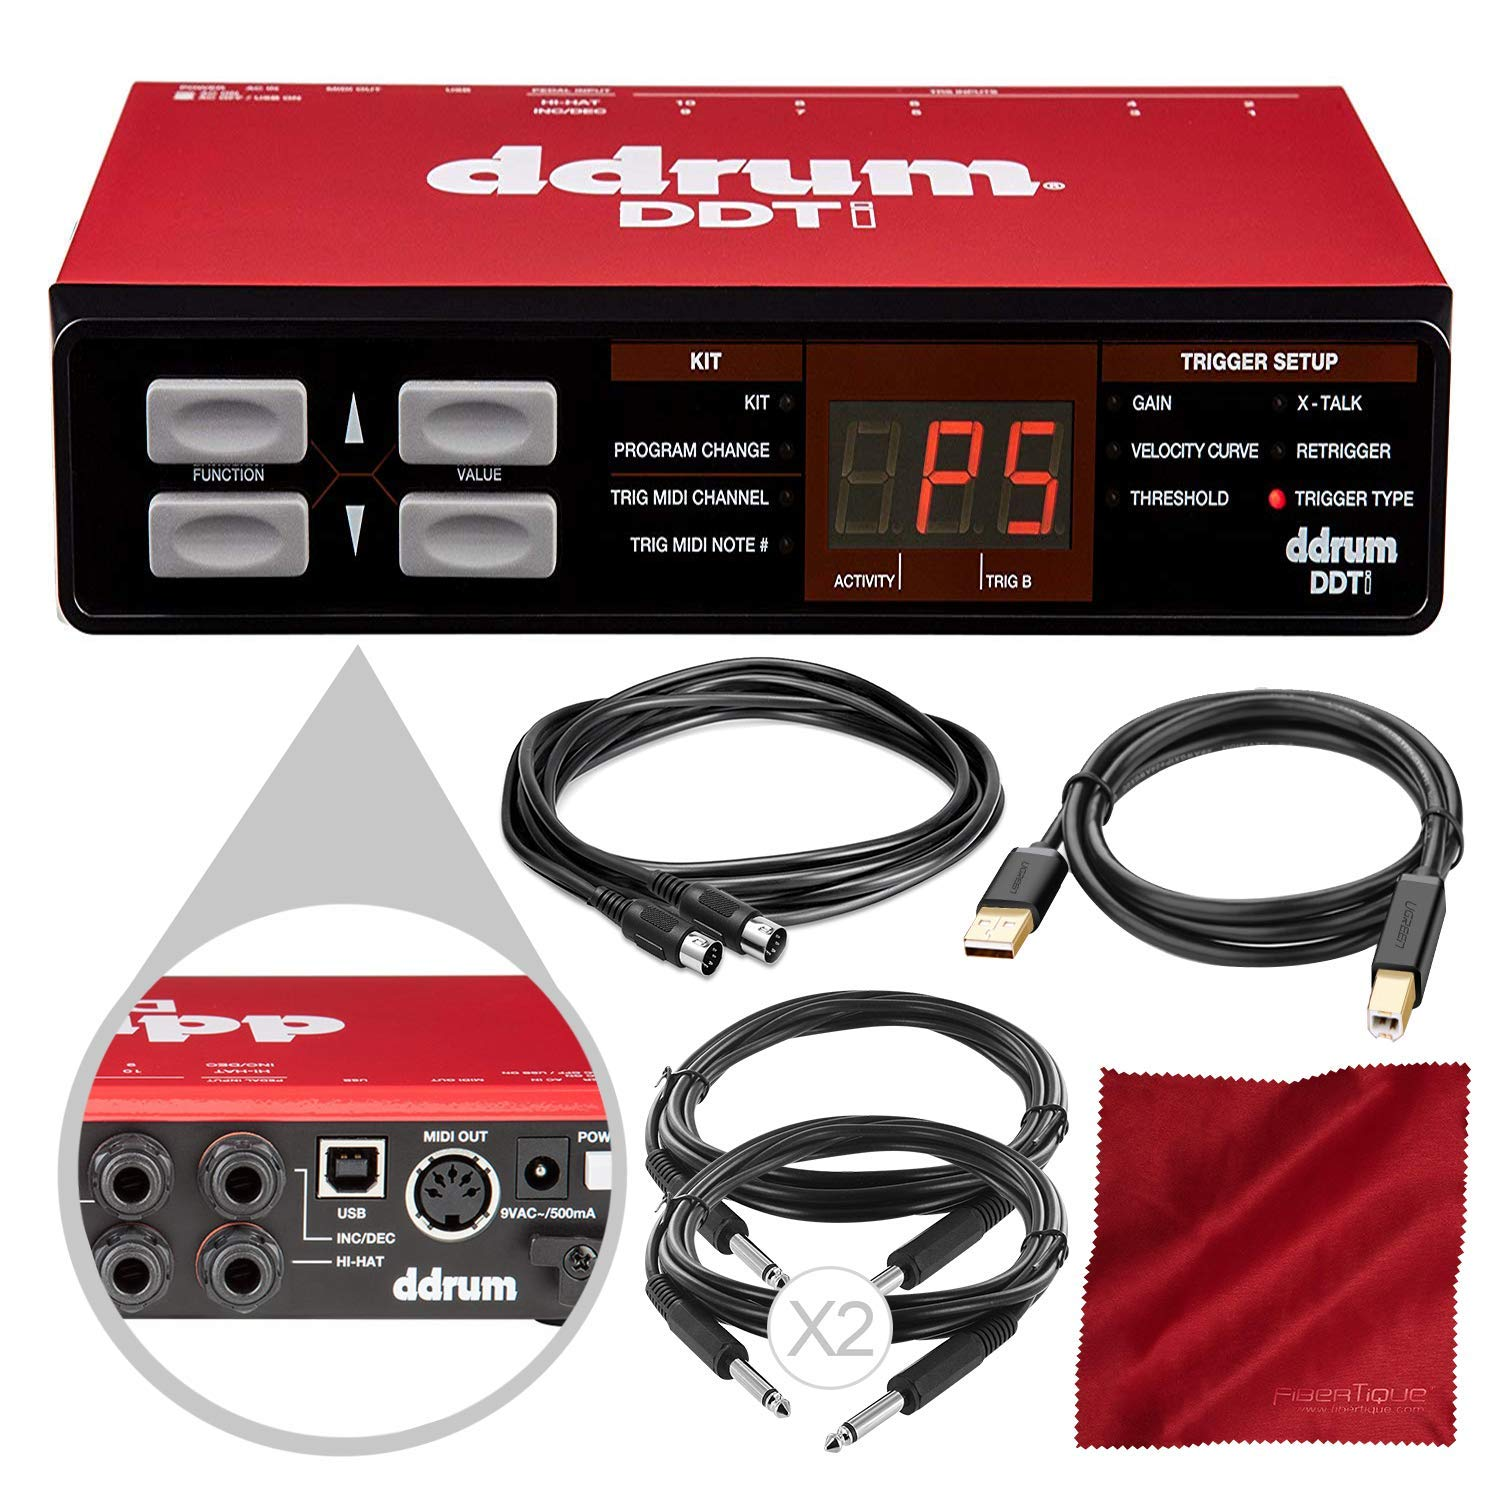 ddrum DDTi Drum Pad and Trigger Interface with Assorted Cables Accessory Bundle by Ddrum